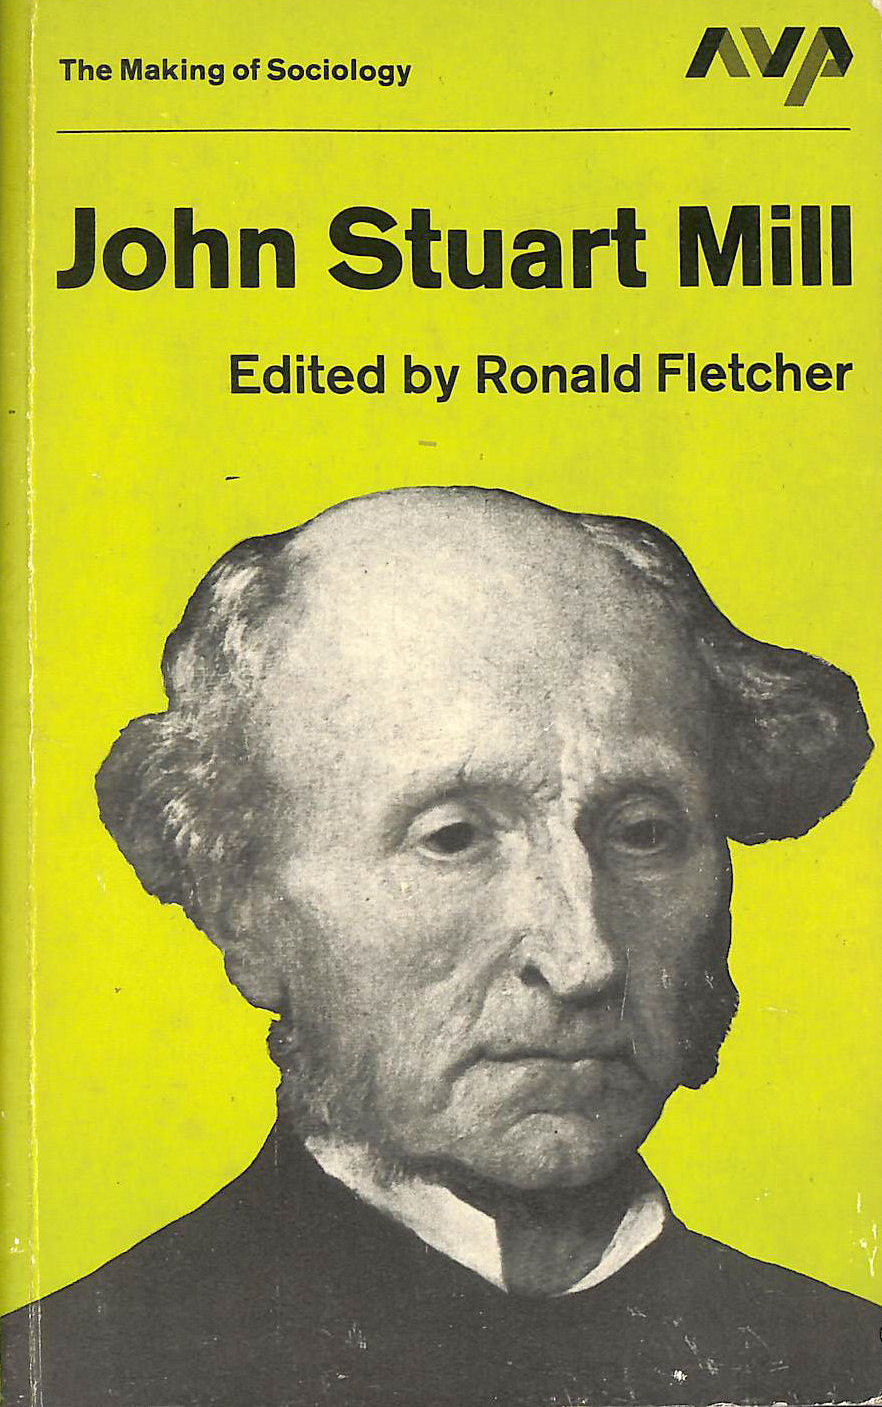 Image for John Stuart Mill: A Logical Critique of Sociology (The making of sociology series)